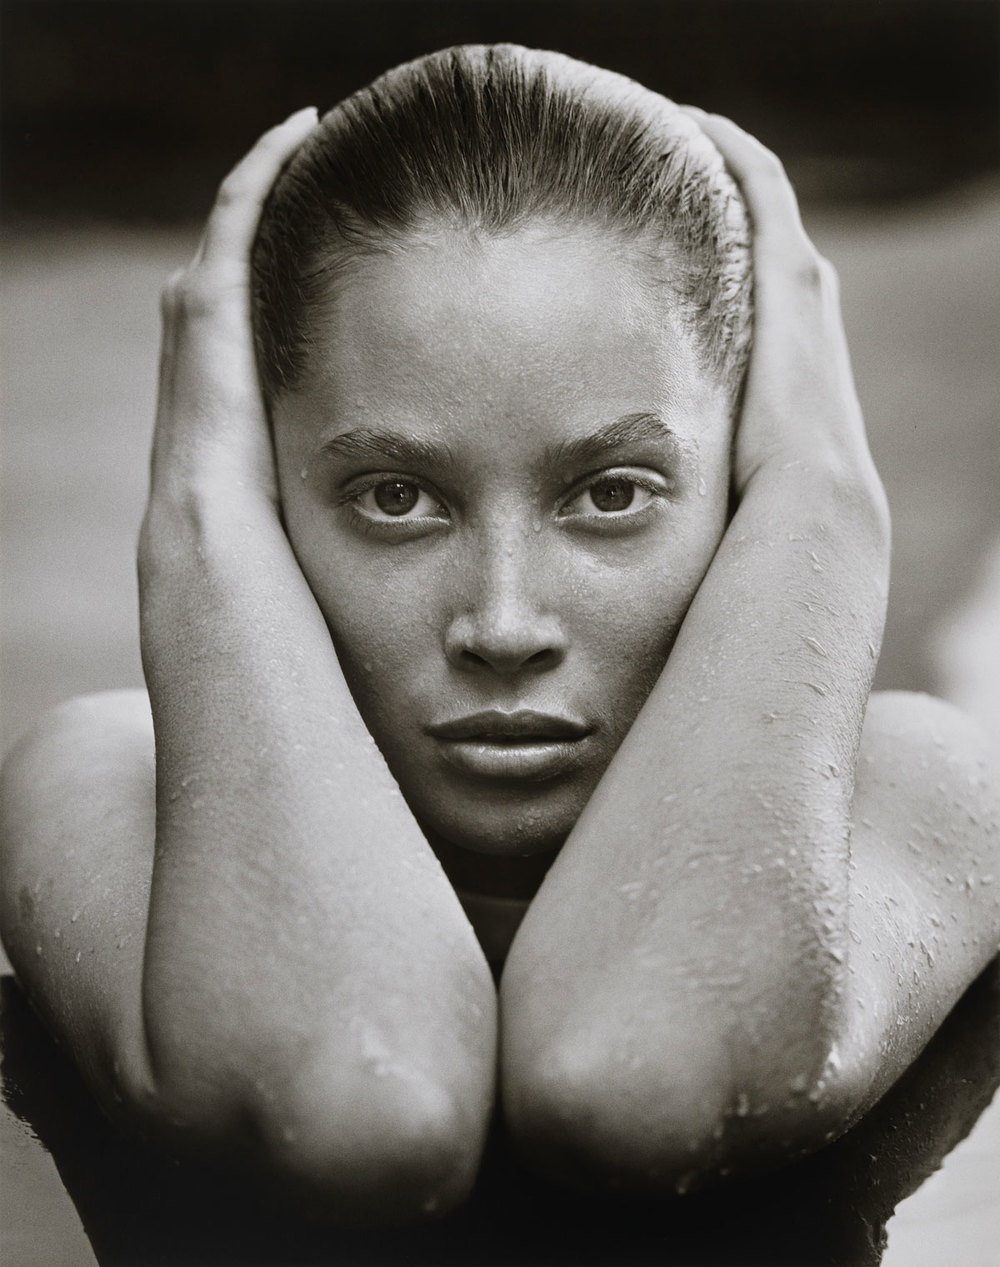 Herb Ritts  (American, 1952-2002)  Christy Turlington, Hollywood  1988 Gelatin silver print Museum of Fine Arts, Boston Gift of Herb Ritts Foundation © Herb Ritts Foundation Photograph © Museum of Fine Arts, Boston